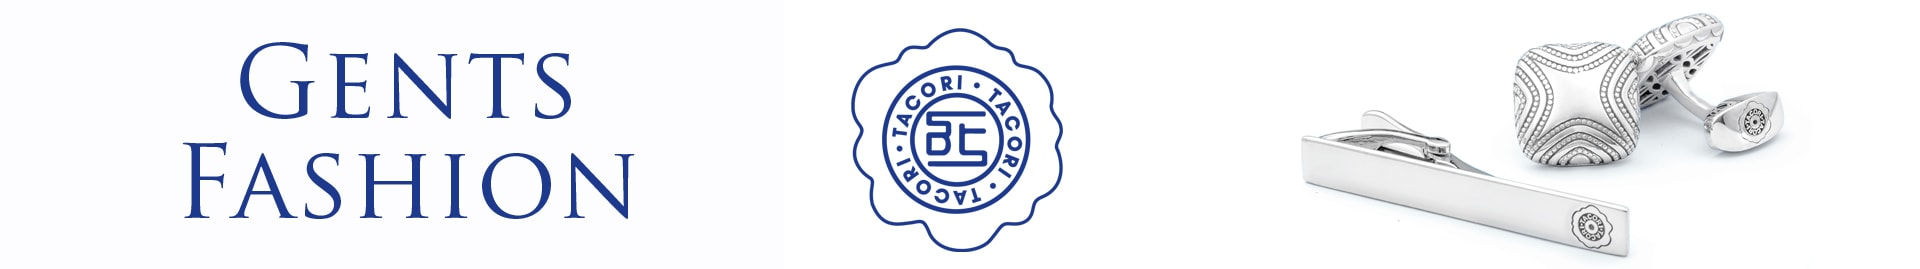 Tacori Men's Jewelry